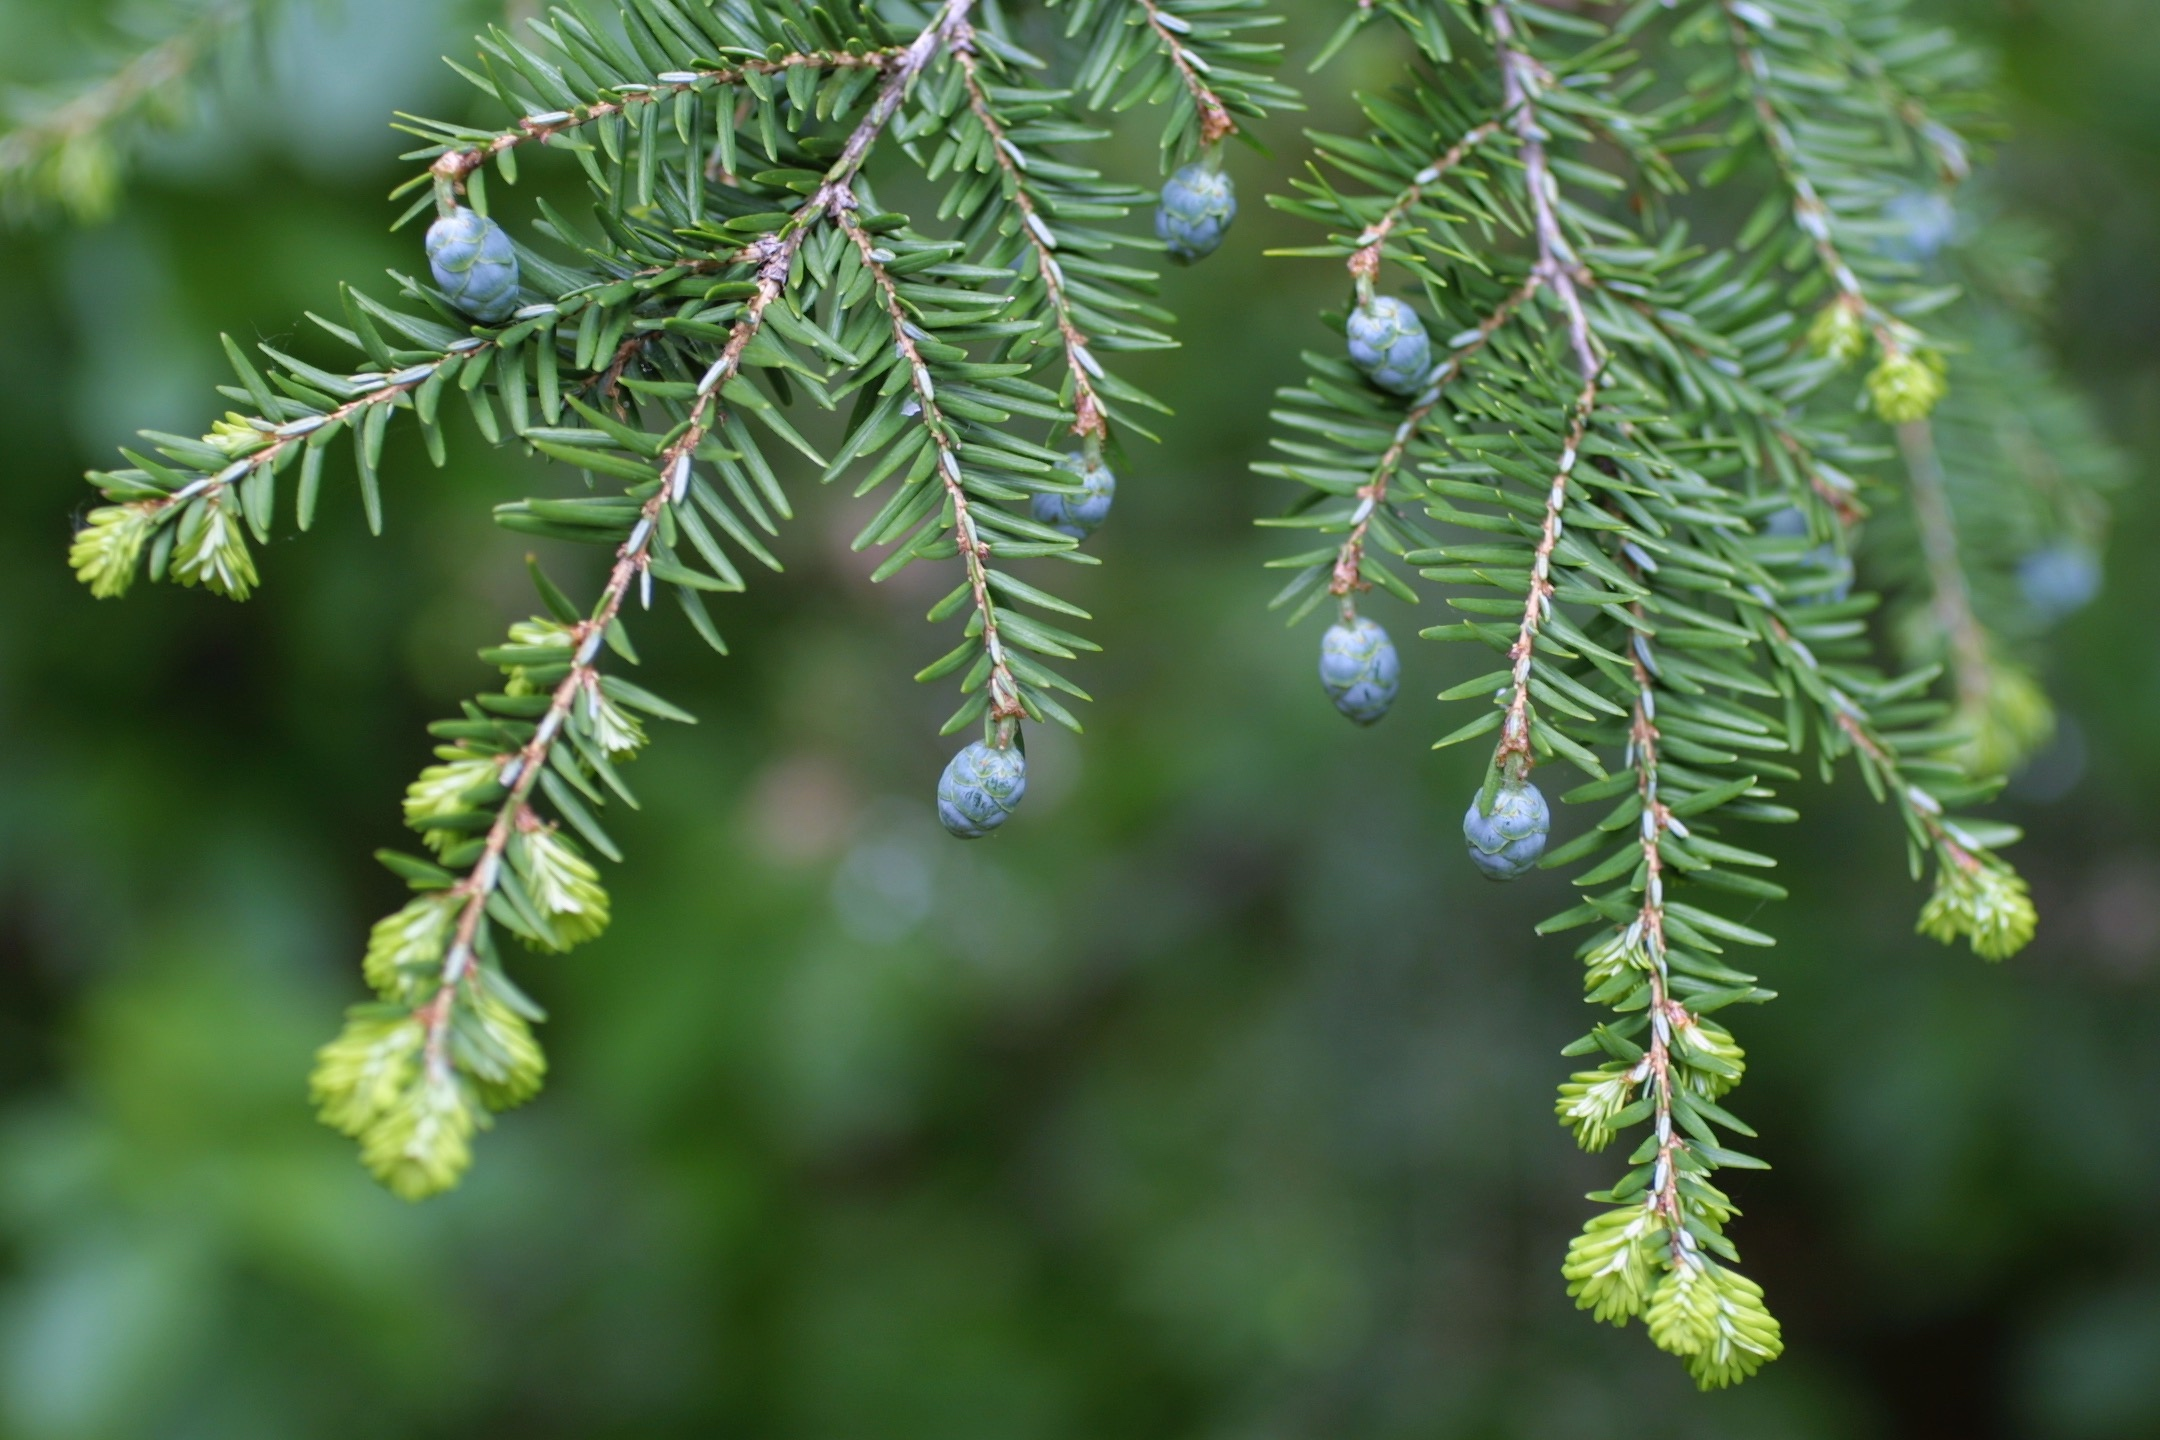 The Scientific Name is Tsuga canadensis. You will likely hear them called Eastern Hemlock, Canada Hemlock, Canadian Hemlock. This picture shows the Flat, two-ranked needles, with new cones of Tsuga canadensis